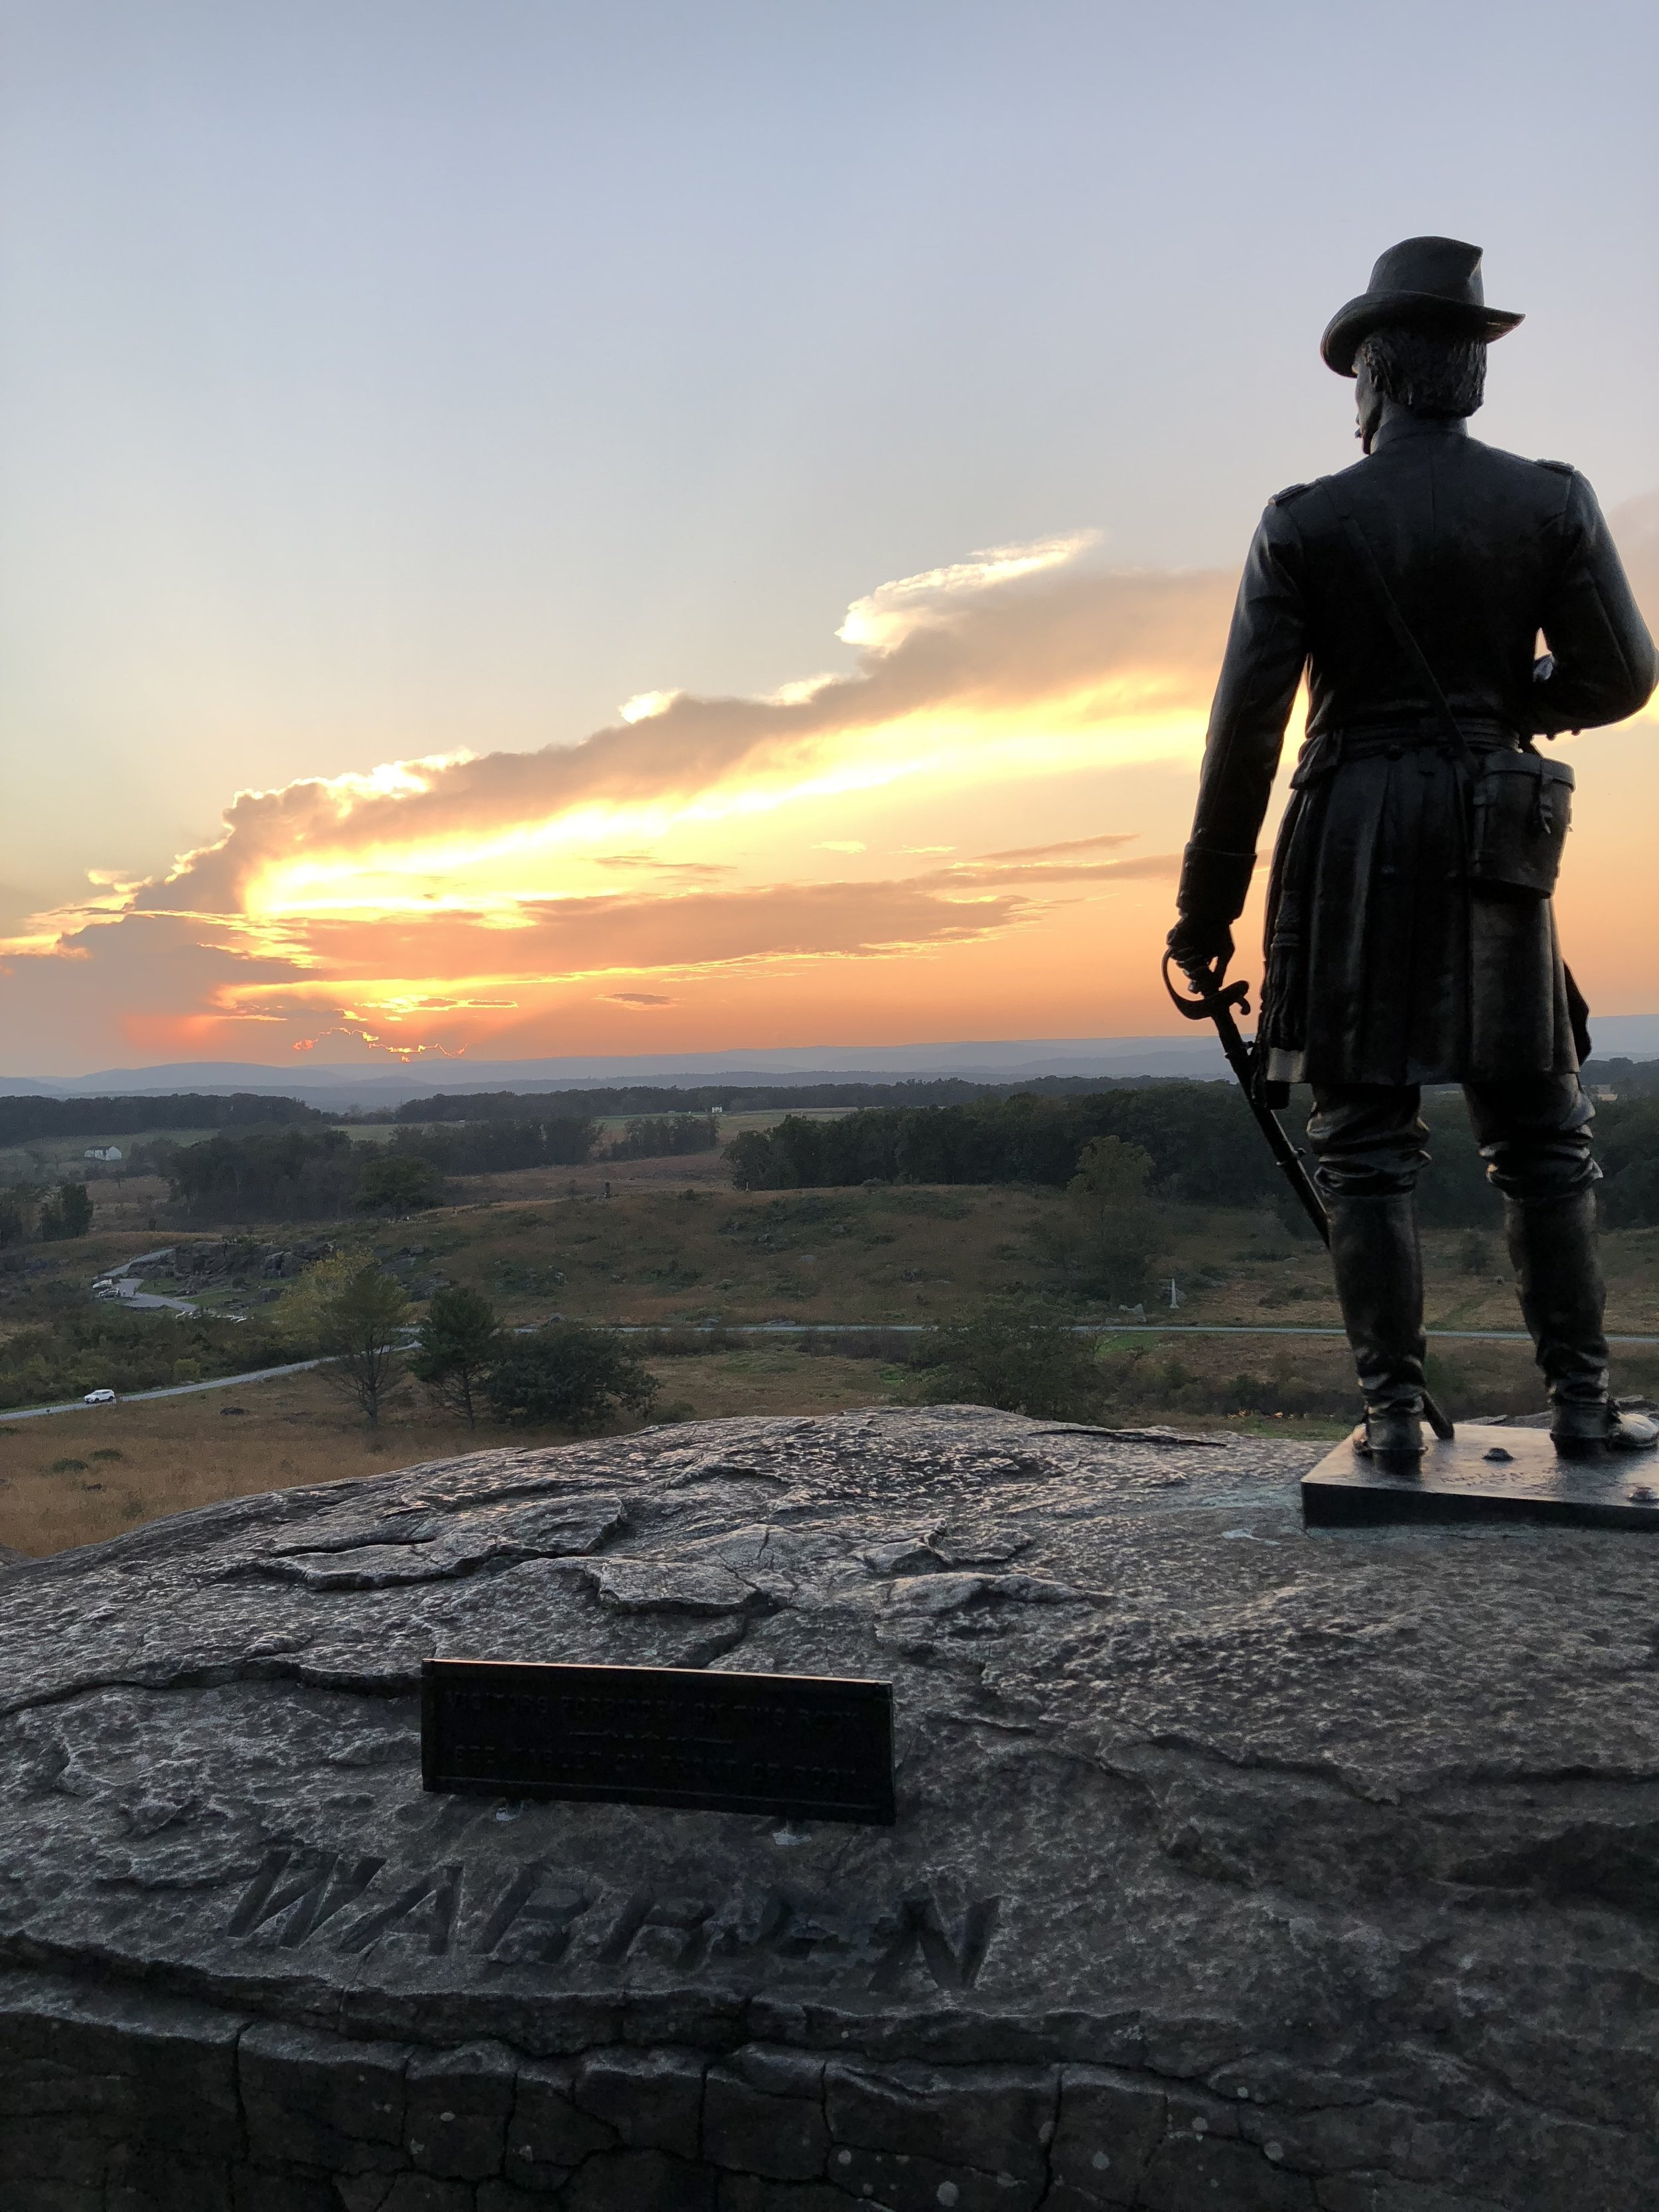 I don't know if I just don't have high testosterone levels or what, but I've never been much of a war history buff. I've always preferred the personalities and issues of the day than tales of strategy and slaughter. Nonetheless, Gettysburg is impressive and sobering.